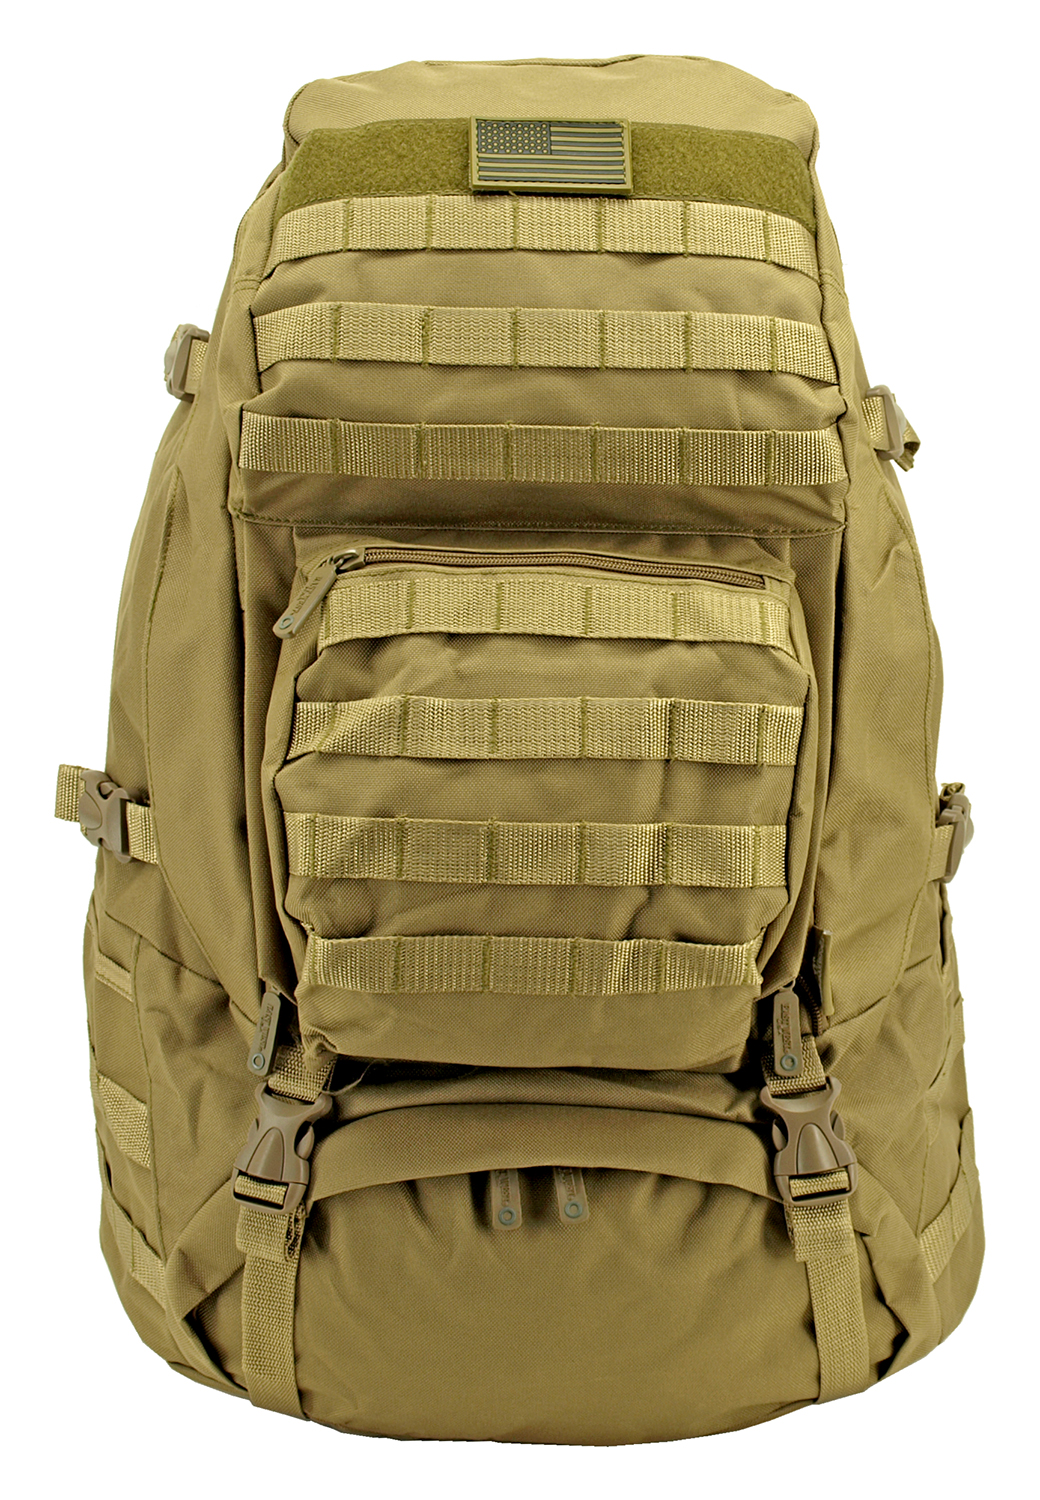 Large Tactical Readiness Pack - Desert Tan